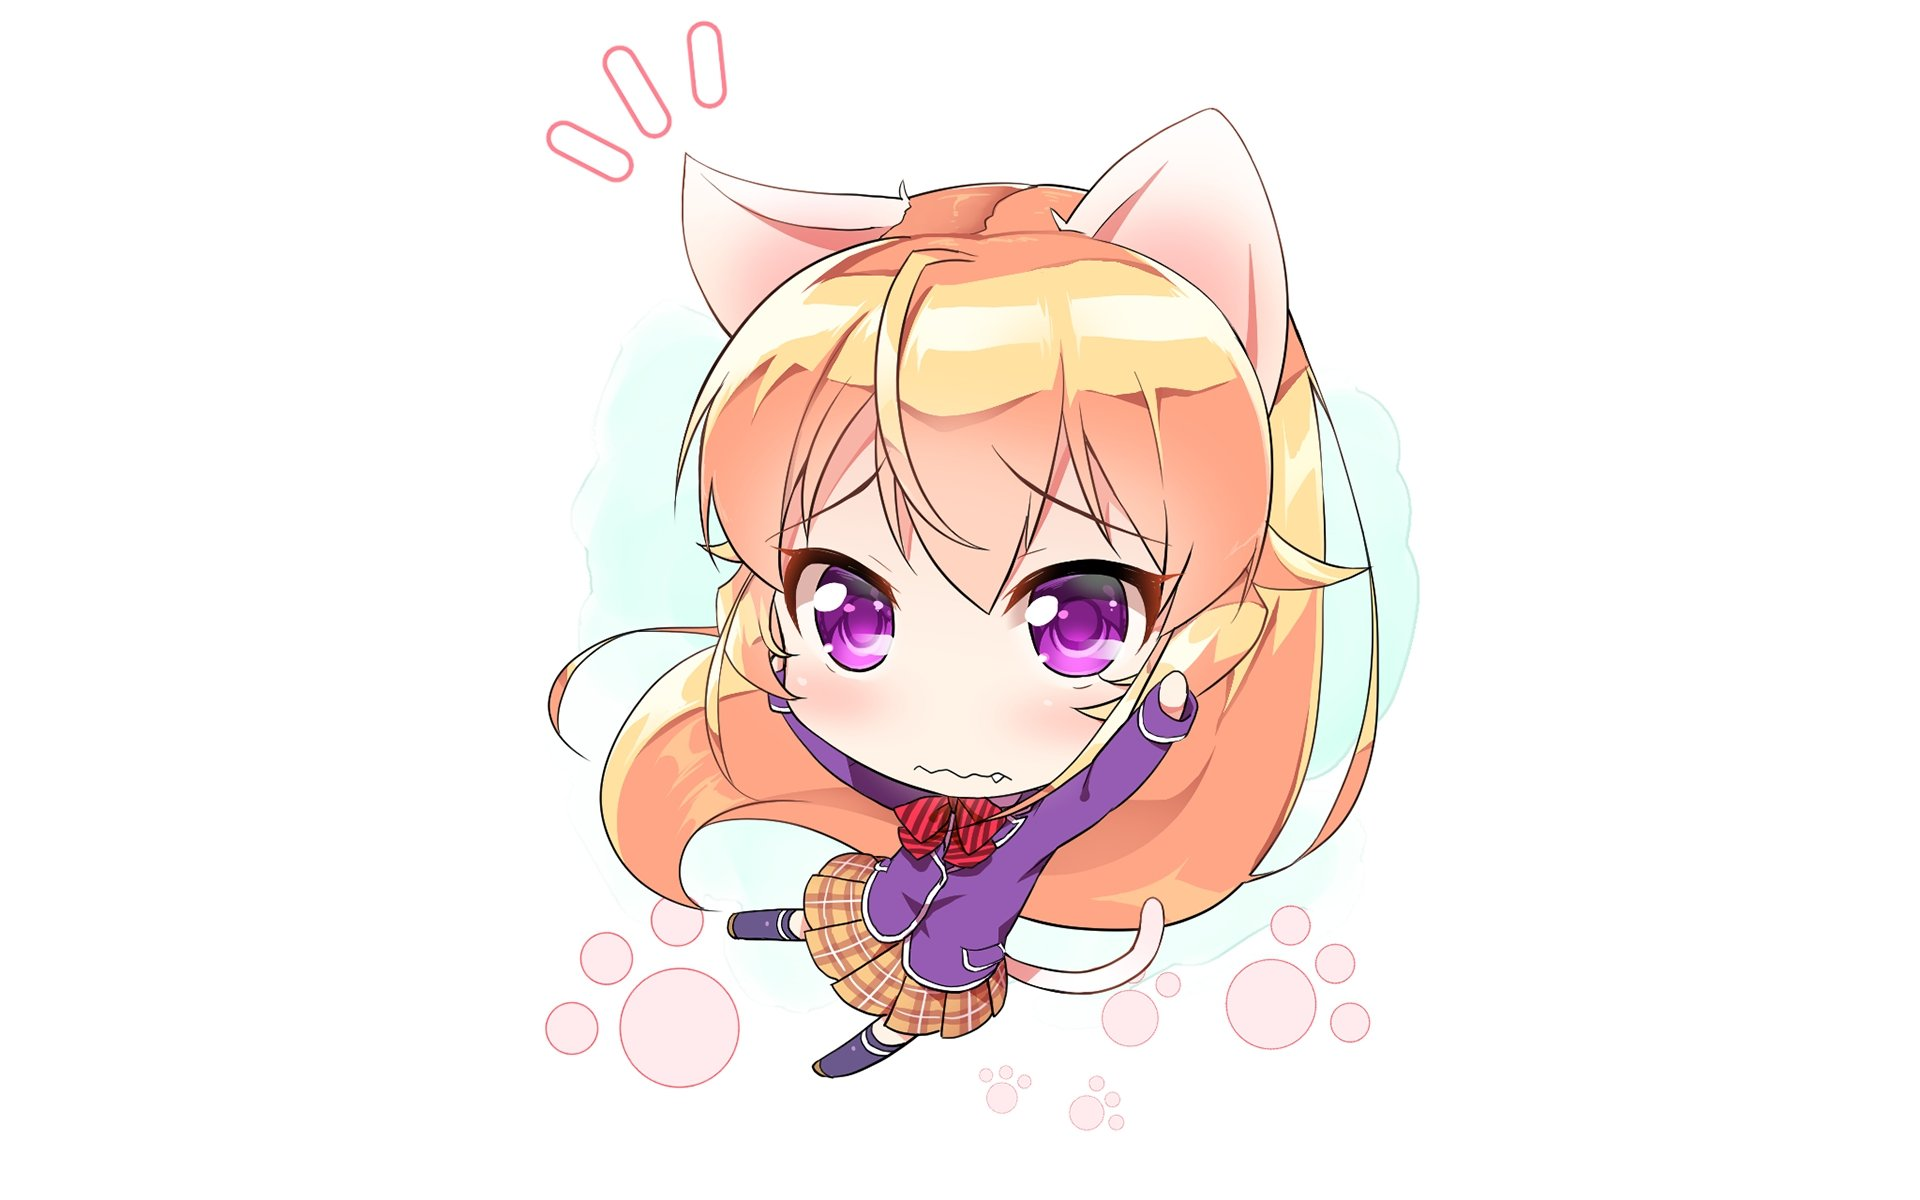 Chibi Wallpapers Hd For Desktop Backgrounds